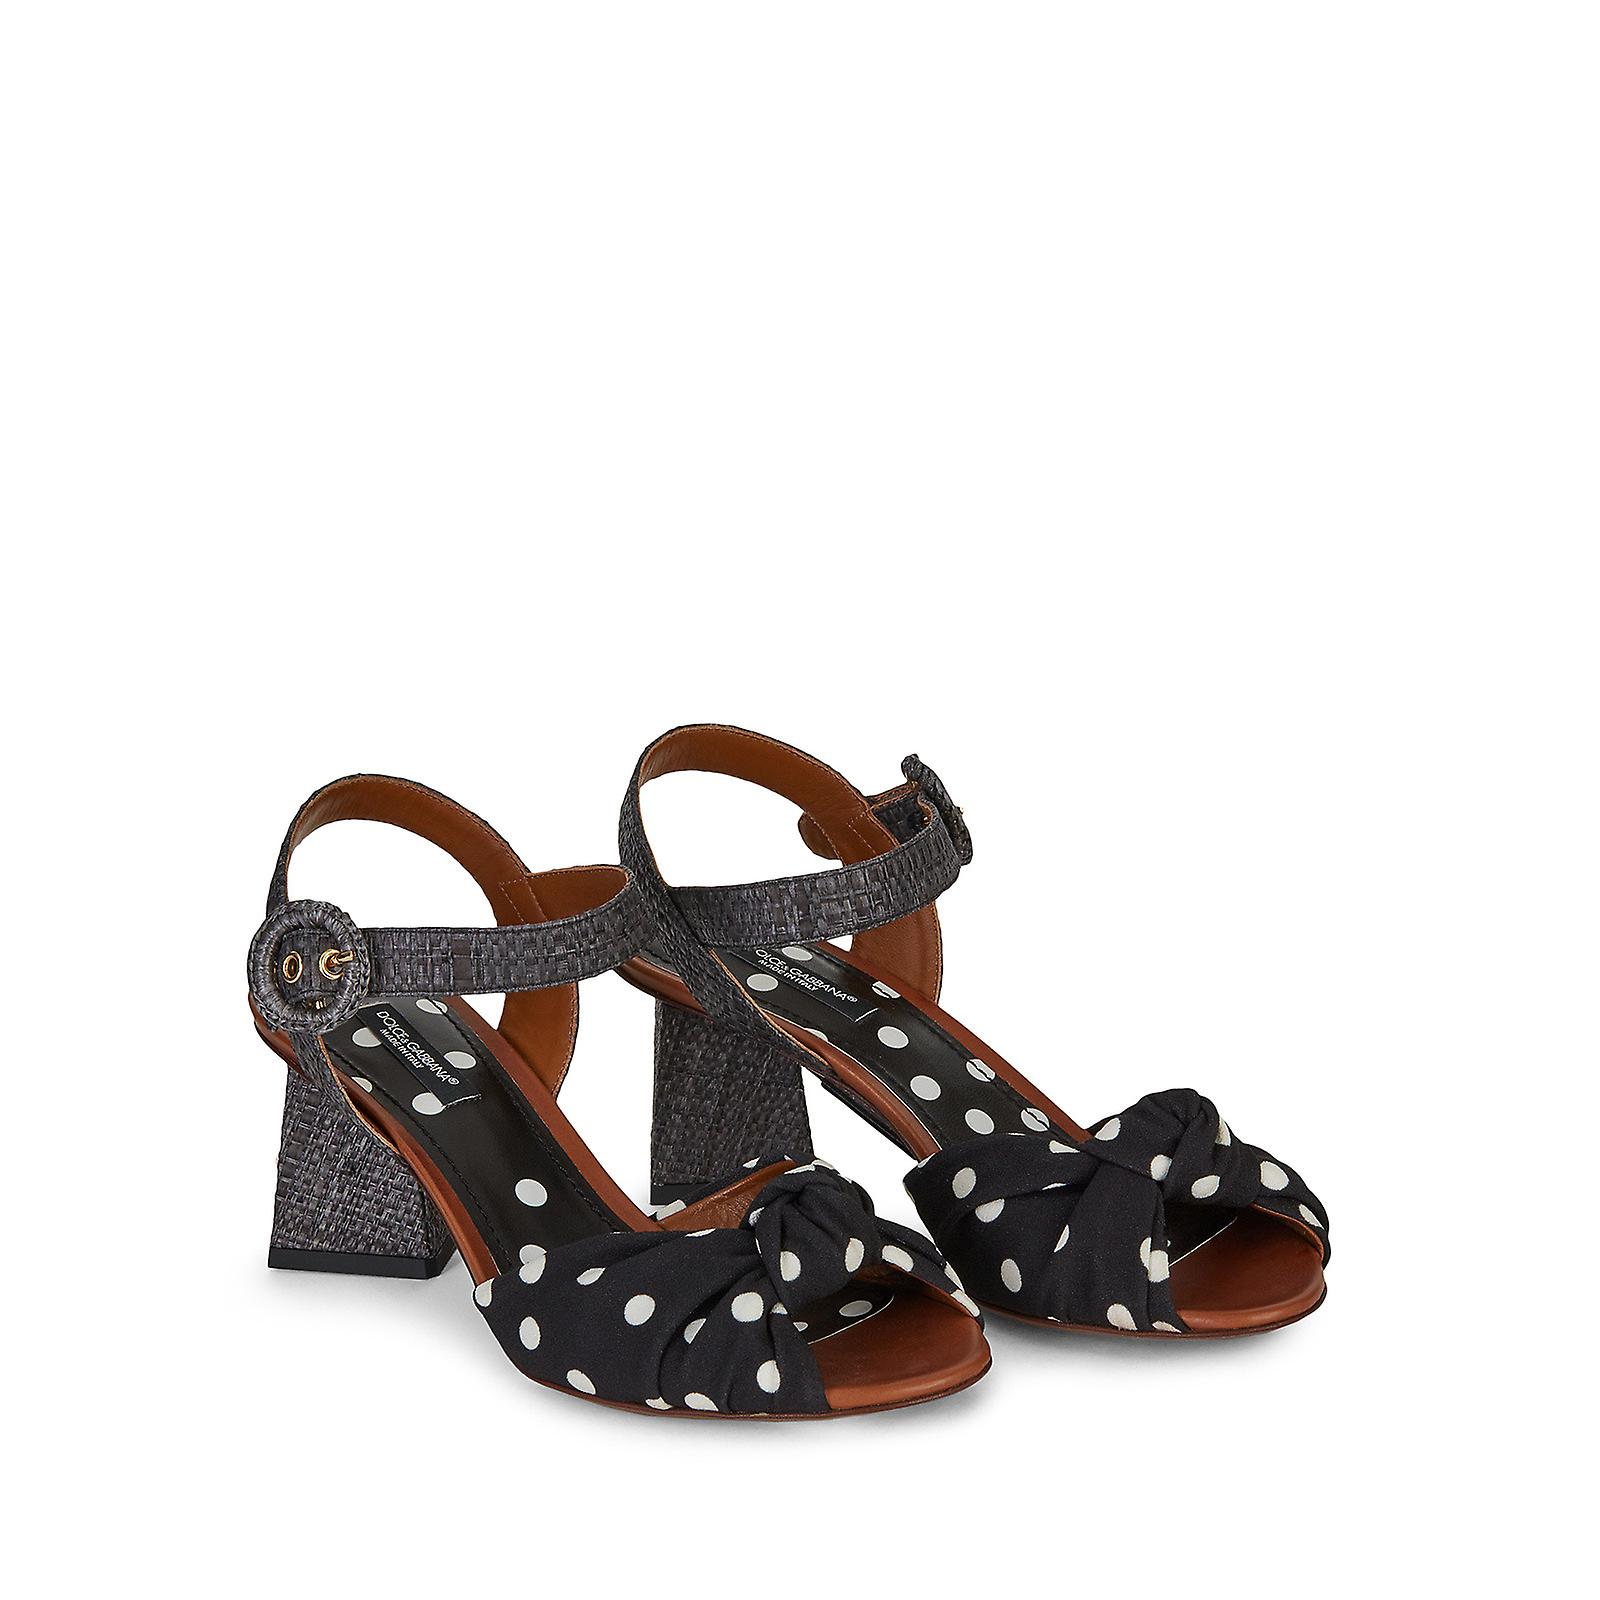 Dolce & Gabbana Mid Block Heel Sandal In Black And White Pois Printed Fabric QvFTv